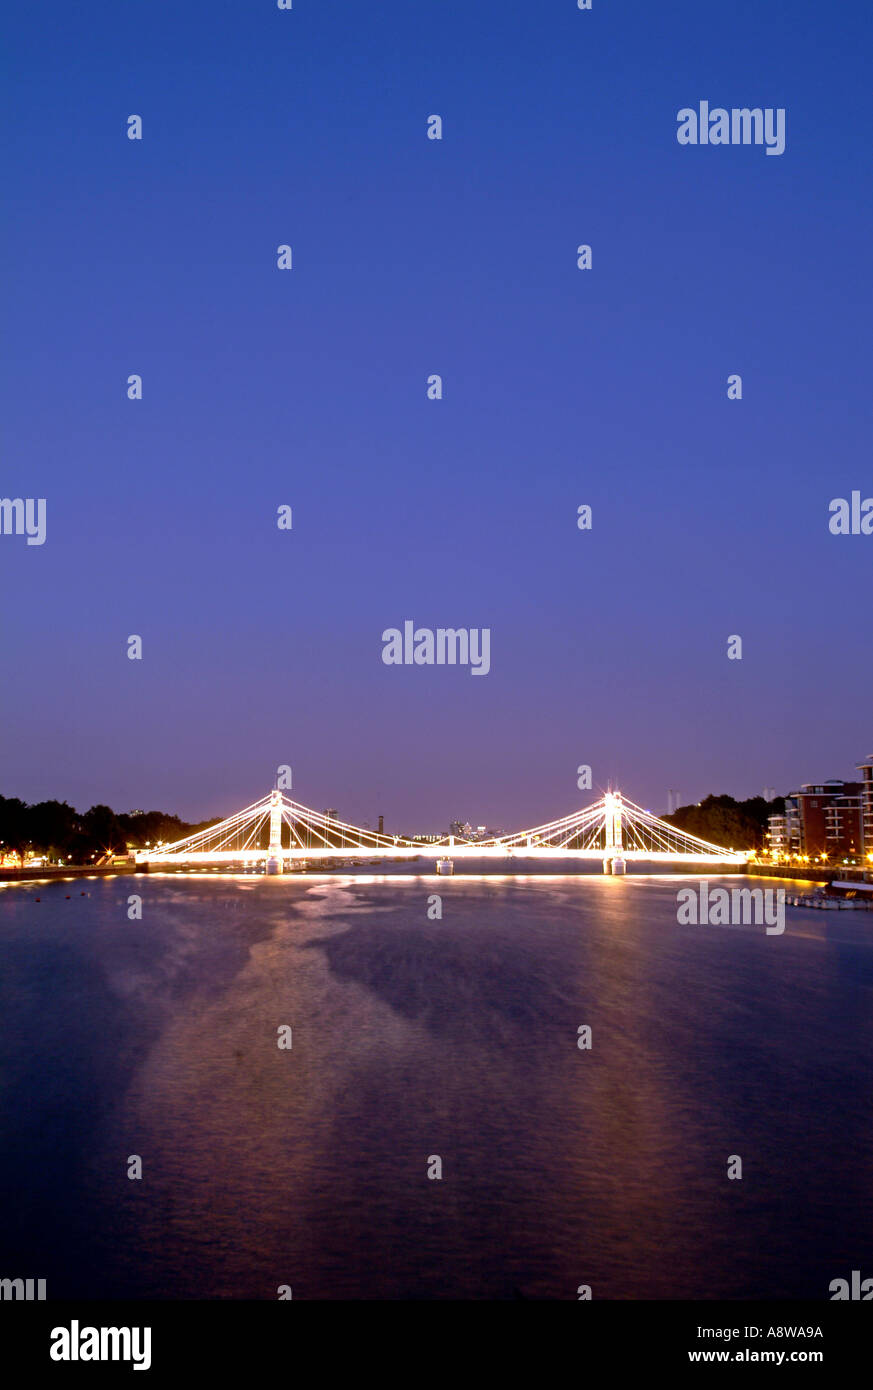 The Albert Bridge over the Thames River in London at dusk. - Stock Image